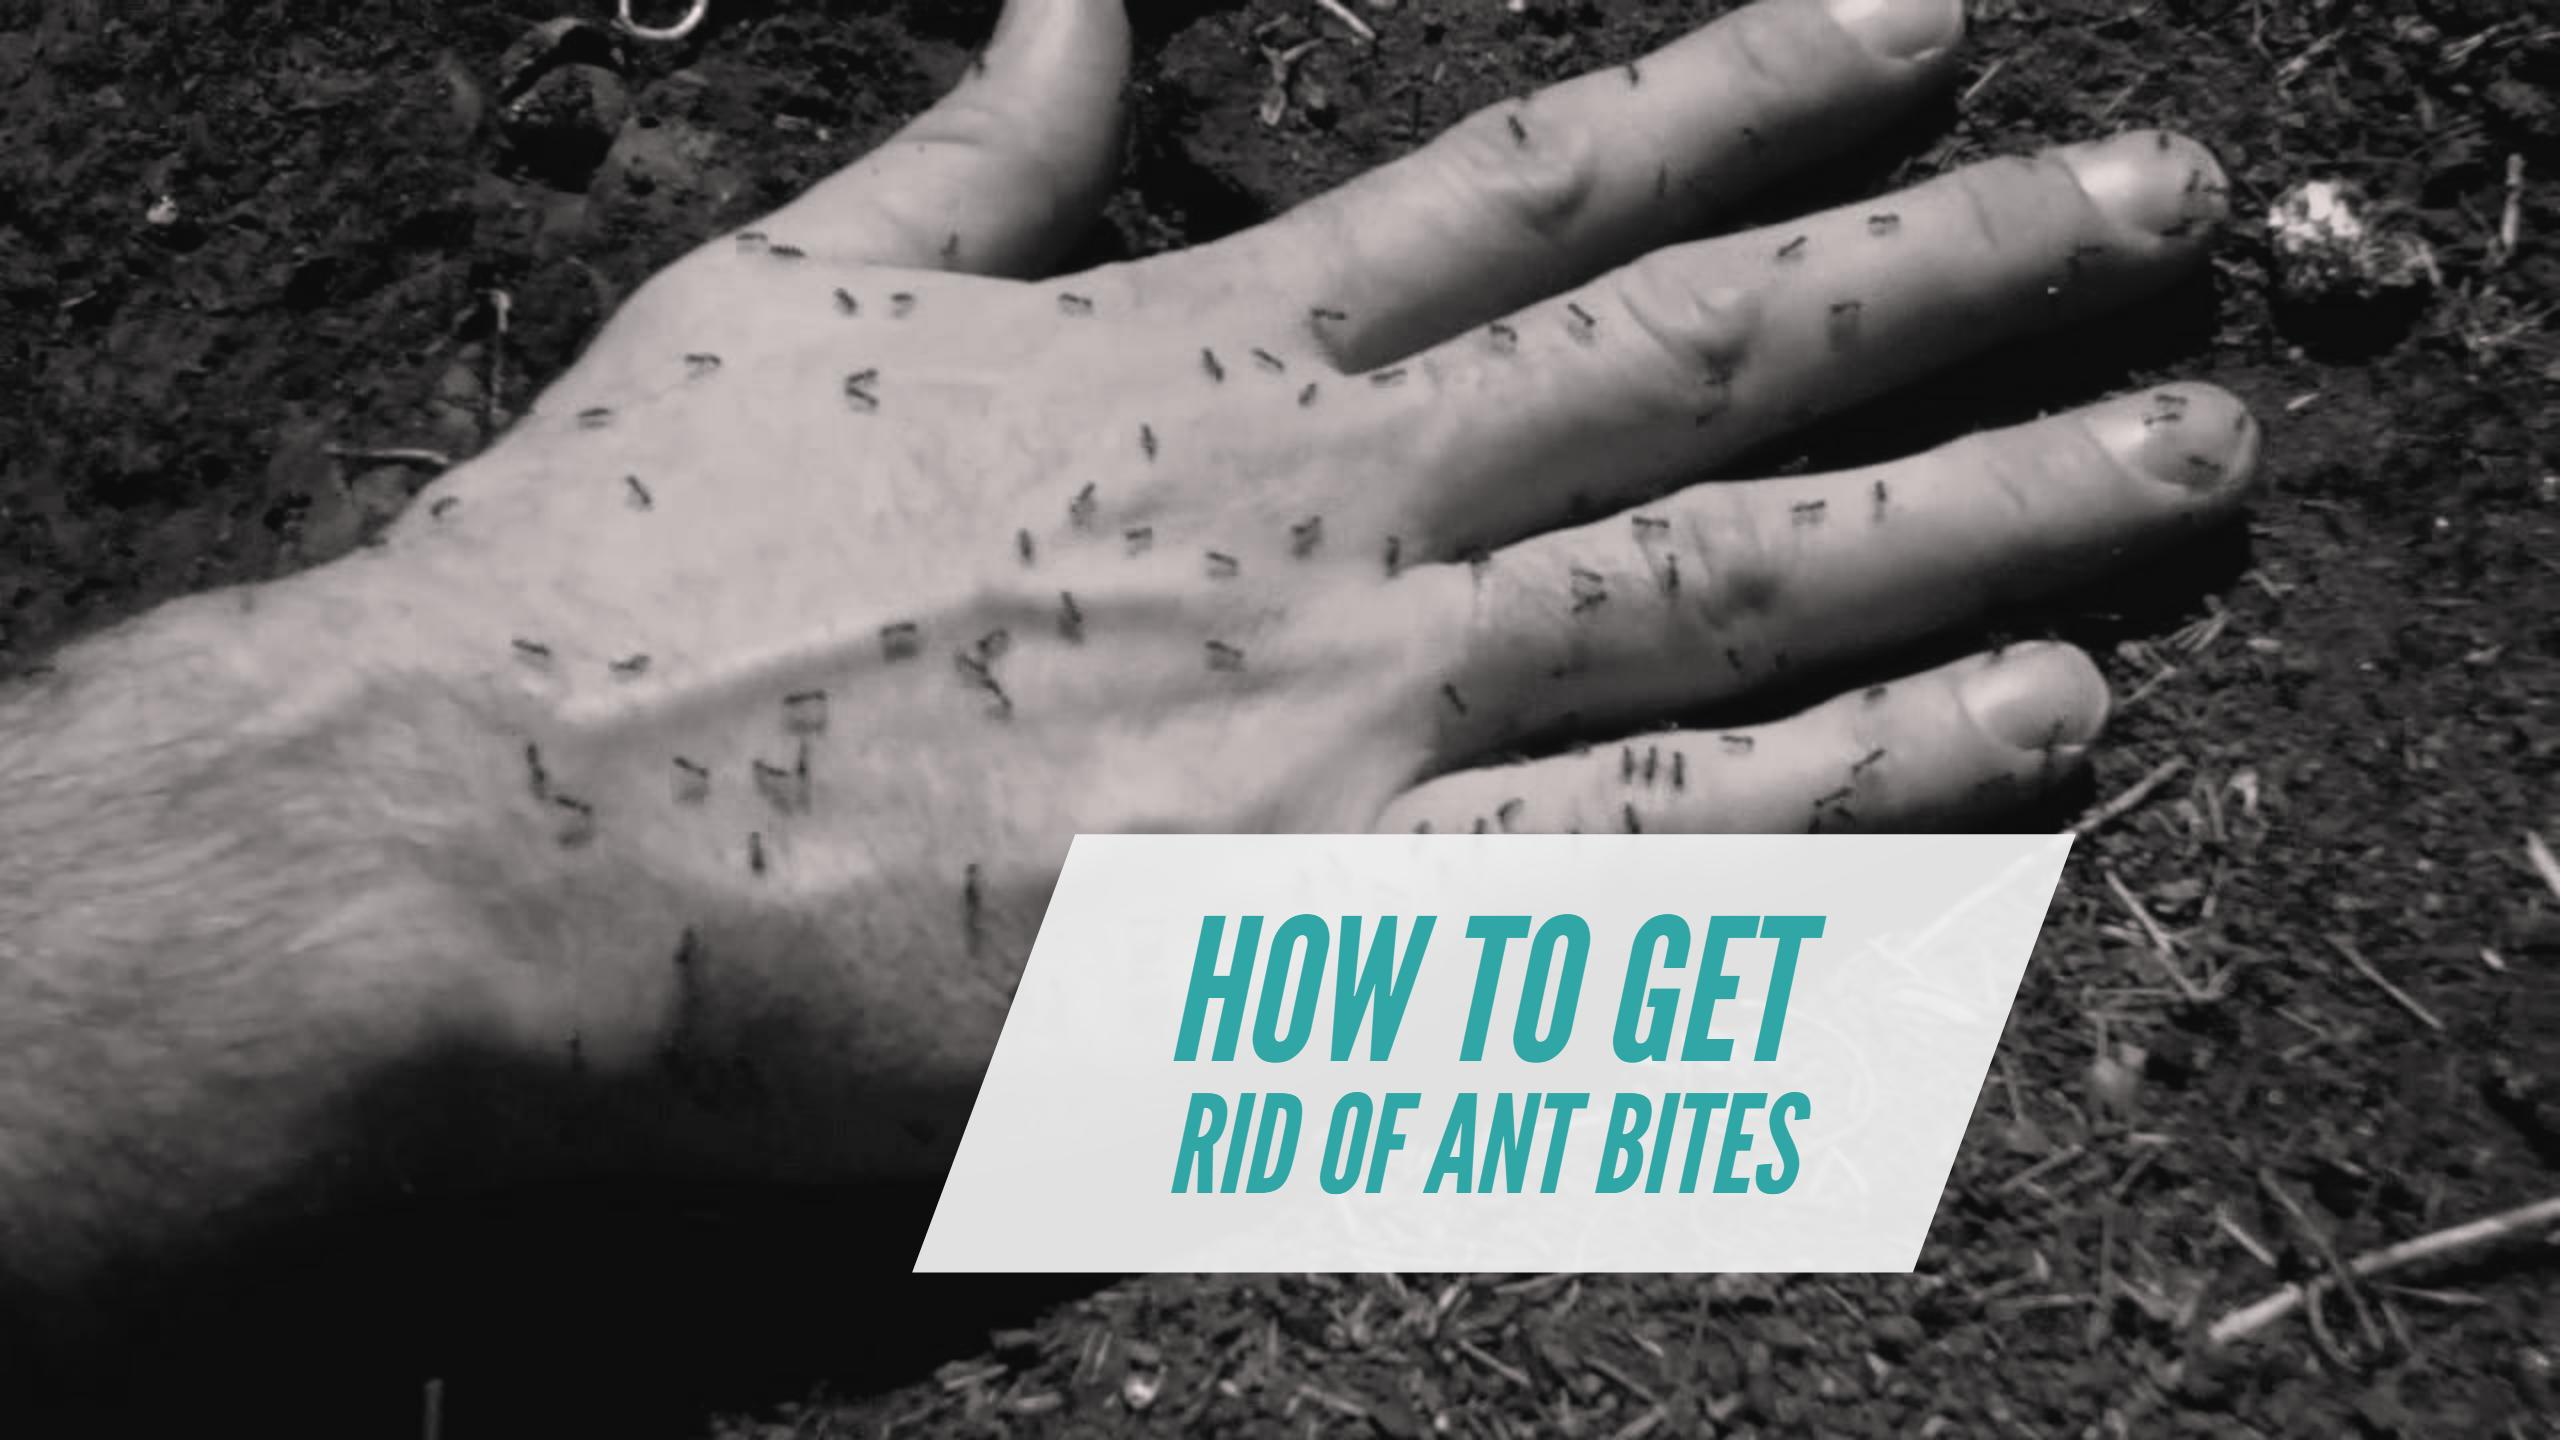 How To Get Rid Of Ant Bites: 12 Effective Ways